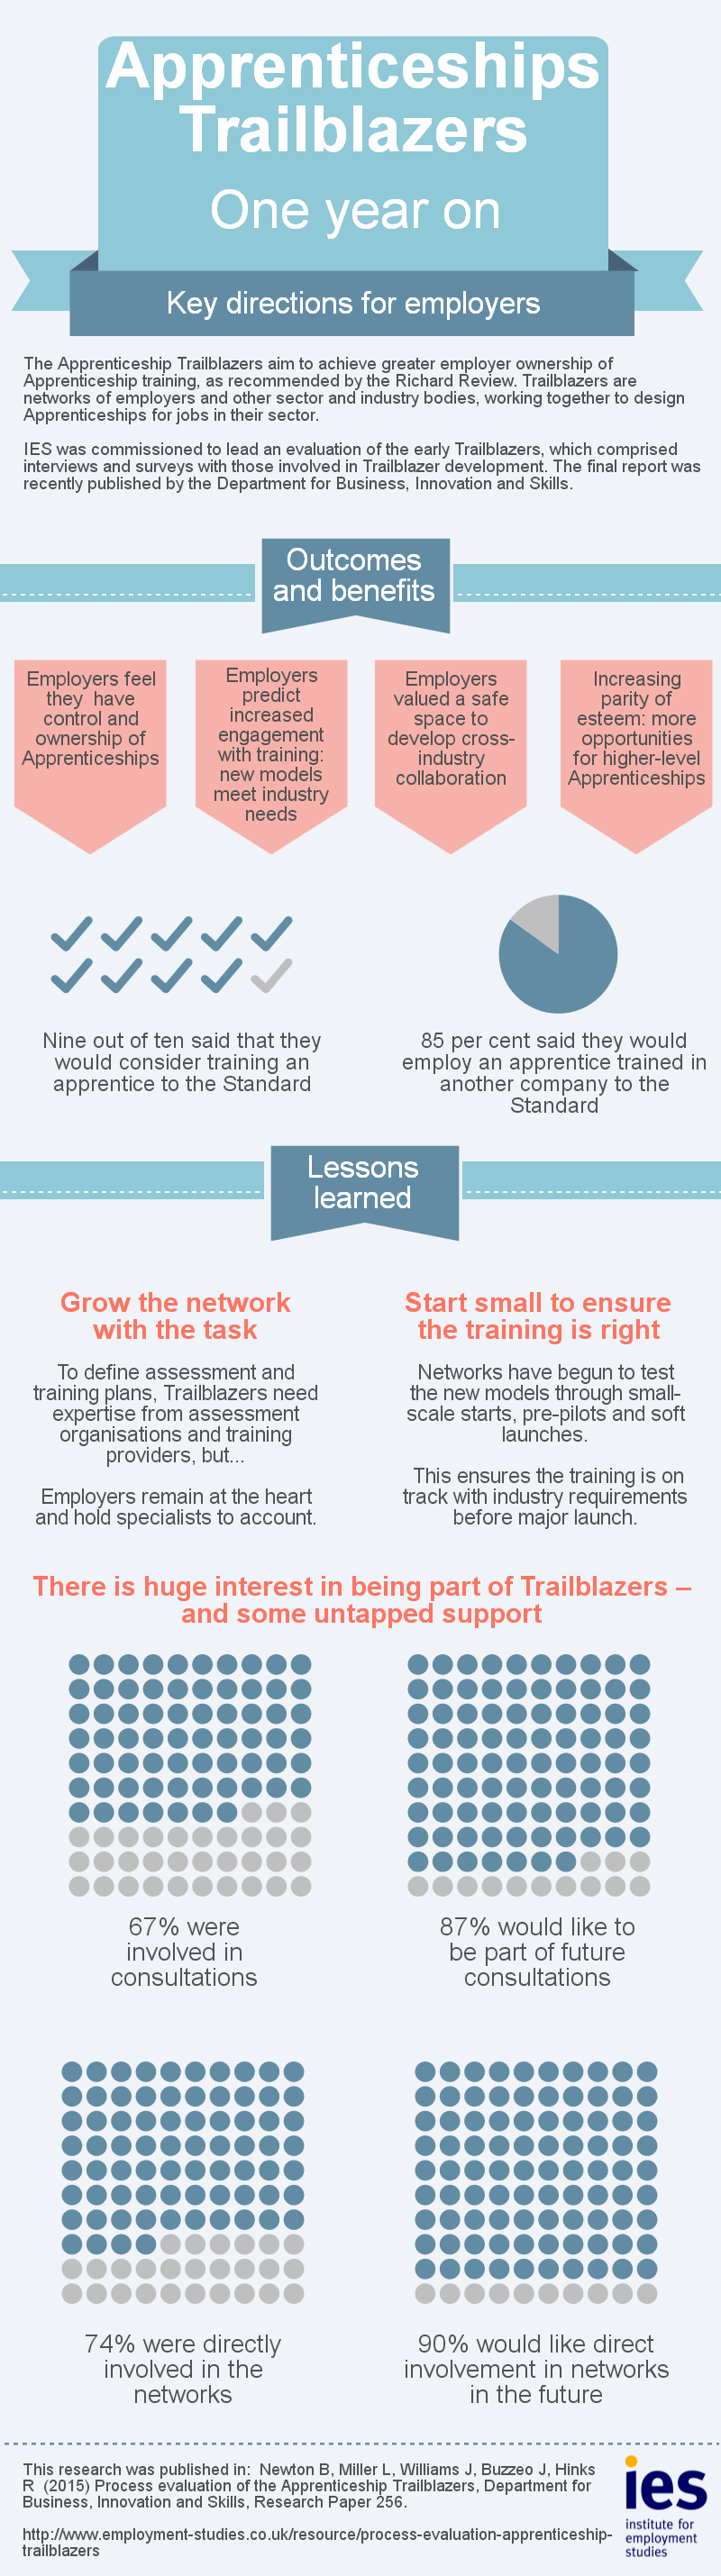 Infographic: Apprenticeship Trailblazers: Key directions for employers